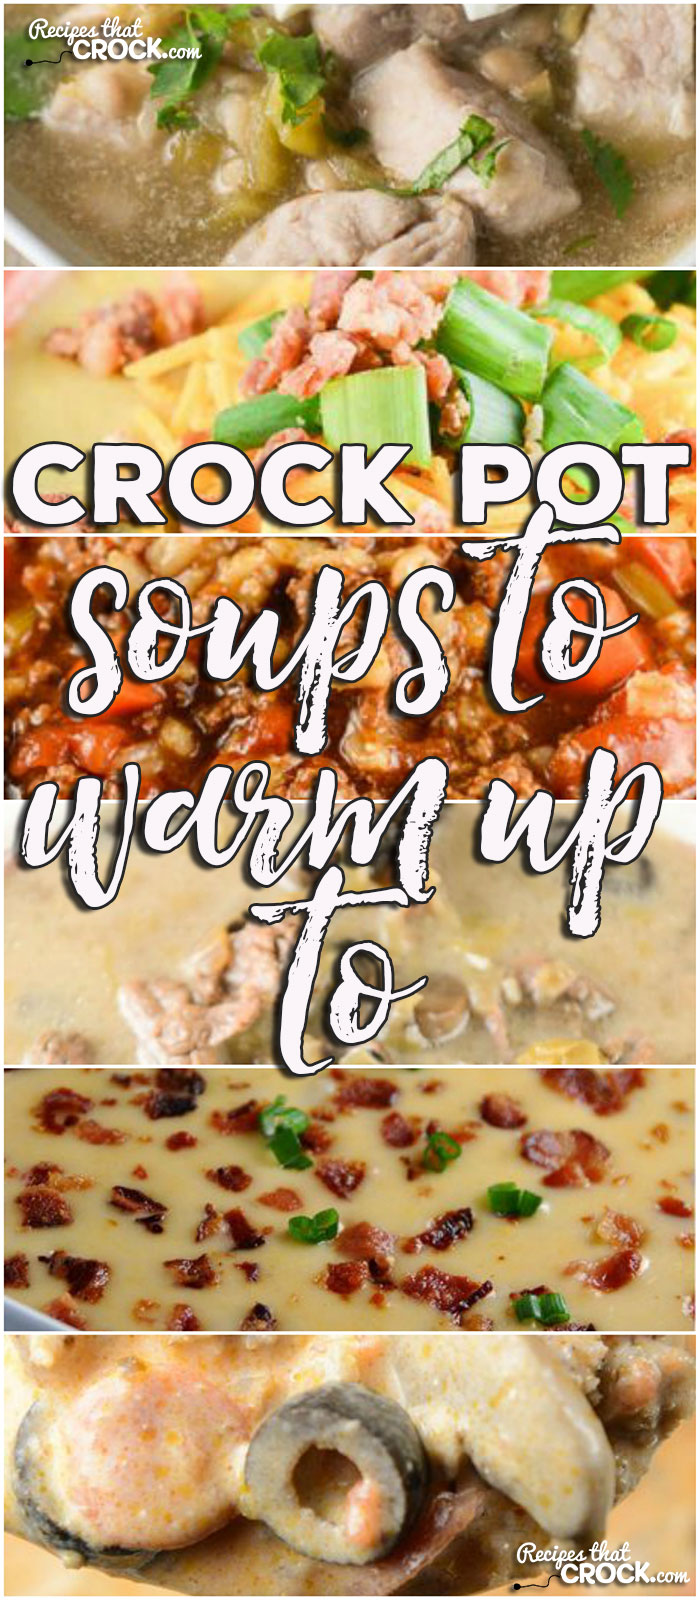 This week for our Friday Favoriteswe have some awesome Crock Pot Cheesy Vegetable Soup,Low Carb Crock Pot Pizza Soup,Crock Pot Turkey Bean Soup,Crock Pot Easy Cheesy Potato Soup,Crock Pot Minestrone Soup,Crock Pot Chicken Noodle Soup,Crock Pot Turkey Tortilla Soup, Crock Pot Sausage Potato Soup,Crock Pot Steak Mushroom Soup,Crock Pot French Onion Soup,Crock Pot Chicken Wild Rice Soup,Crock Pot Beef Barley Soup,Crock Pot Chicken Pot Pie Soup,Crock Pot Loaded Cheesy Cauliflower Soup,Buffalo Chicken Soup,Crock Pot Steak Soup,Crock Pot Chile Verde Soup andSlow Cooker Stuffed Pepper Soup.